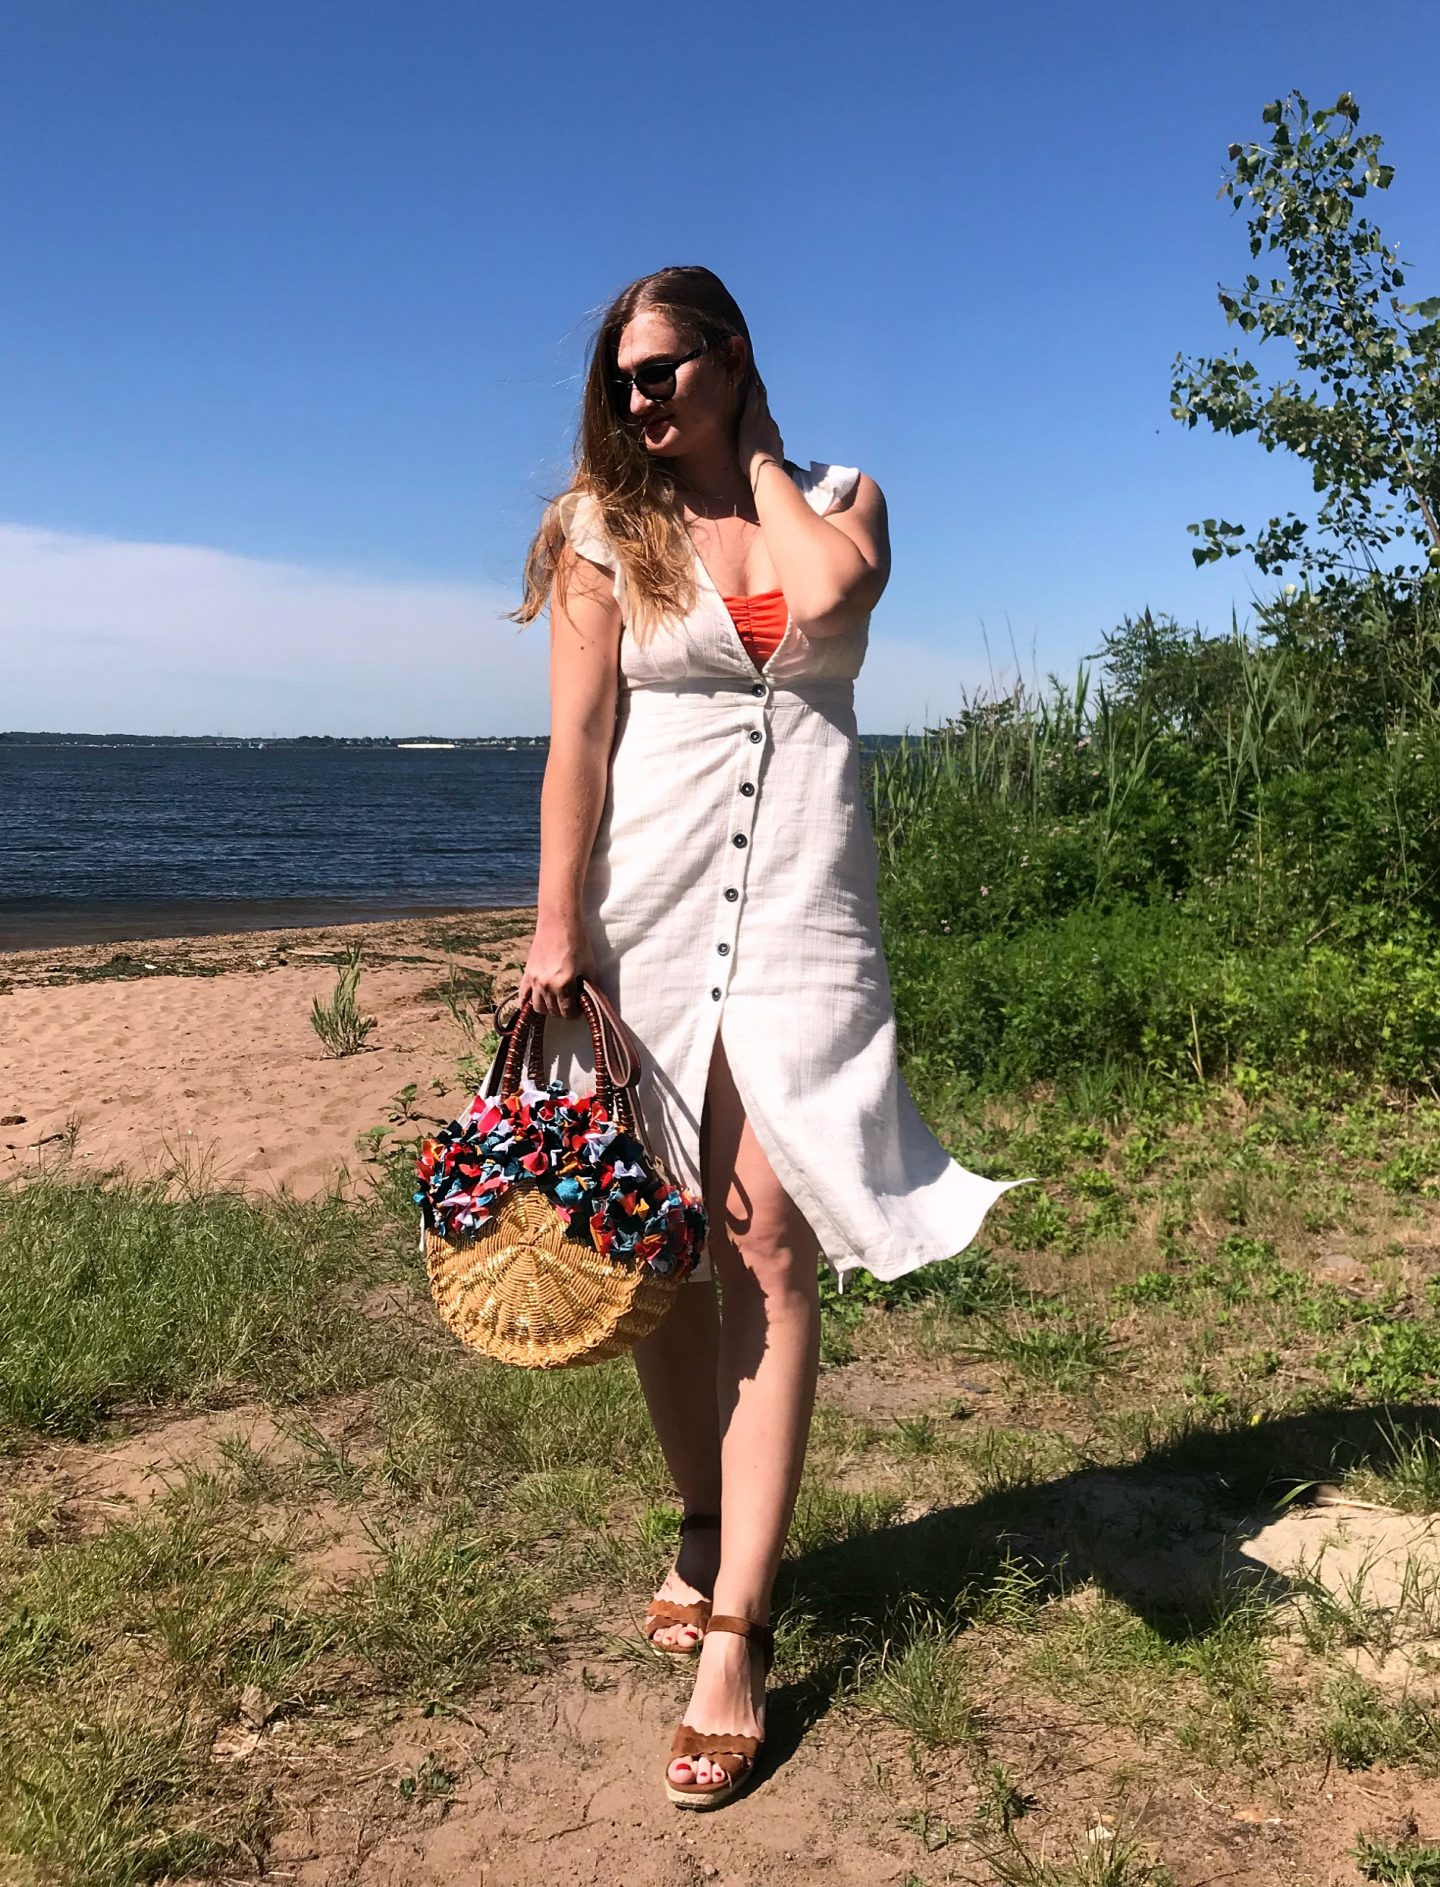 White Summer Dress: Day 4 of The EasilyDressed Style Challenge